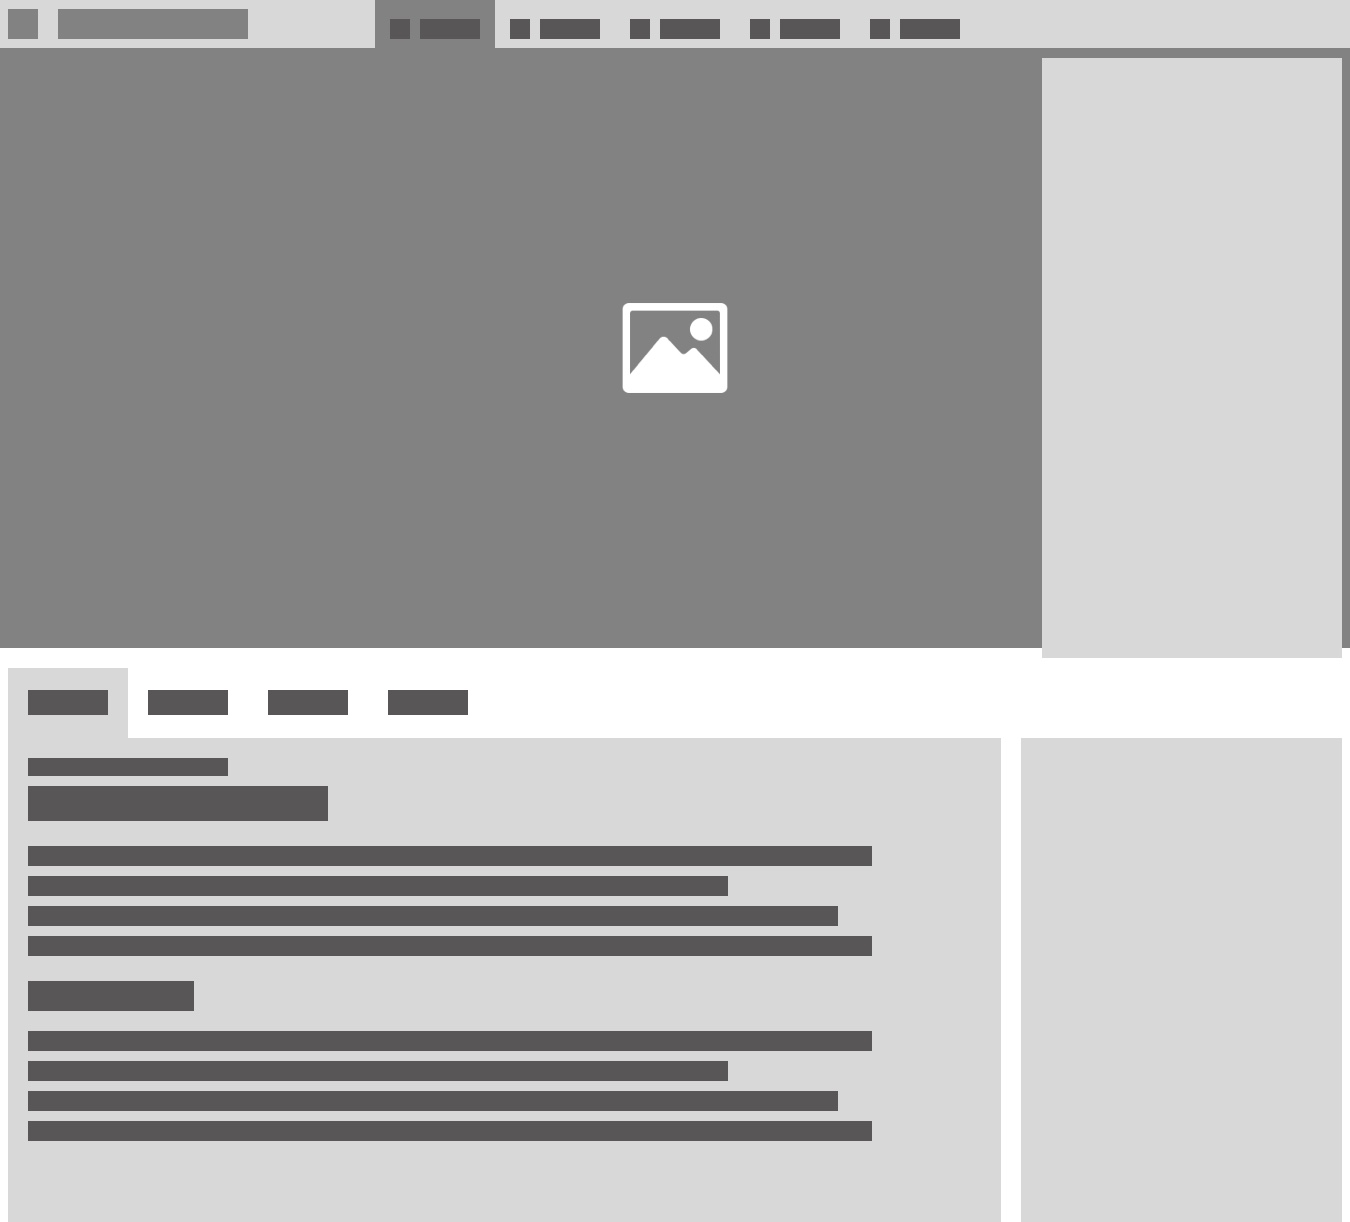 Solitaire Subdomain - Wireframe